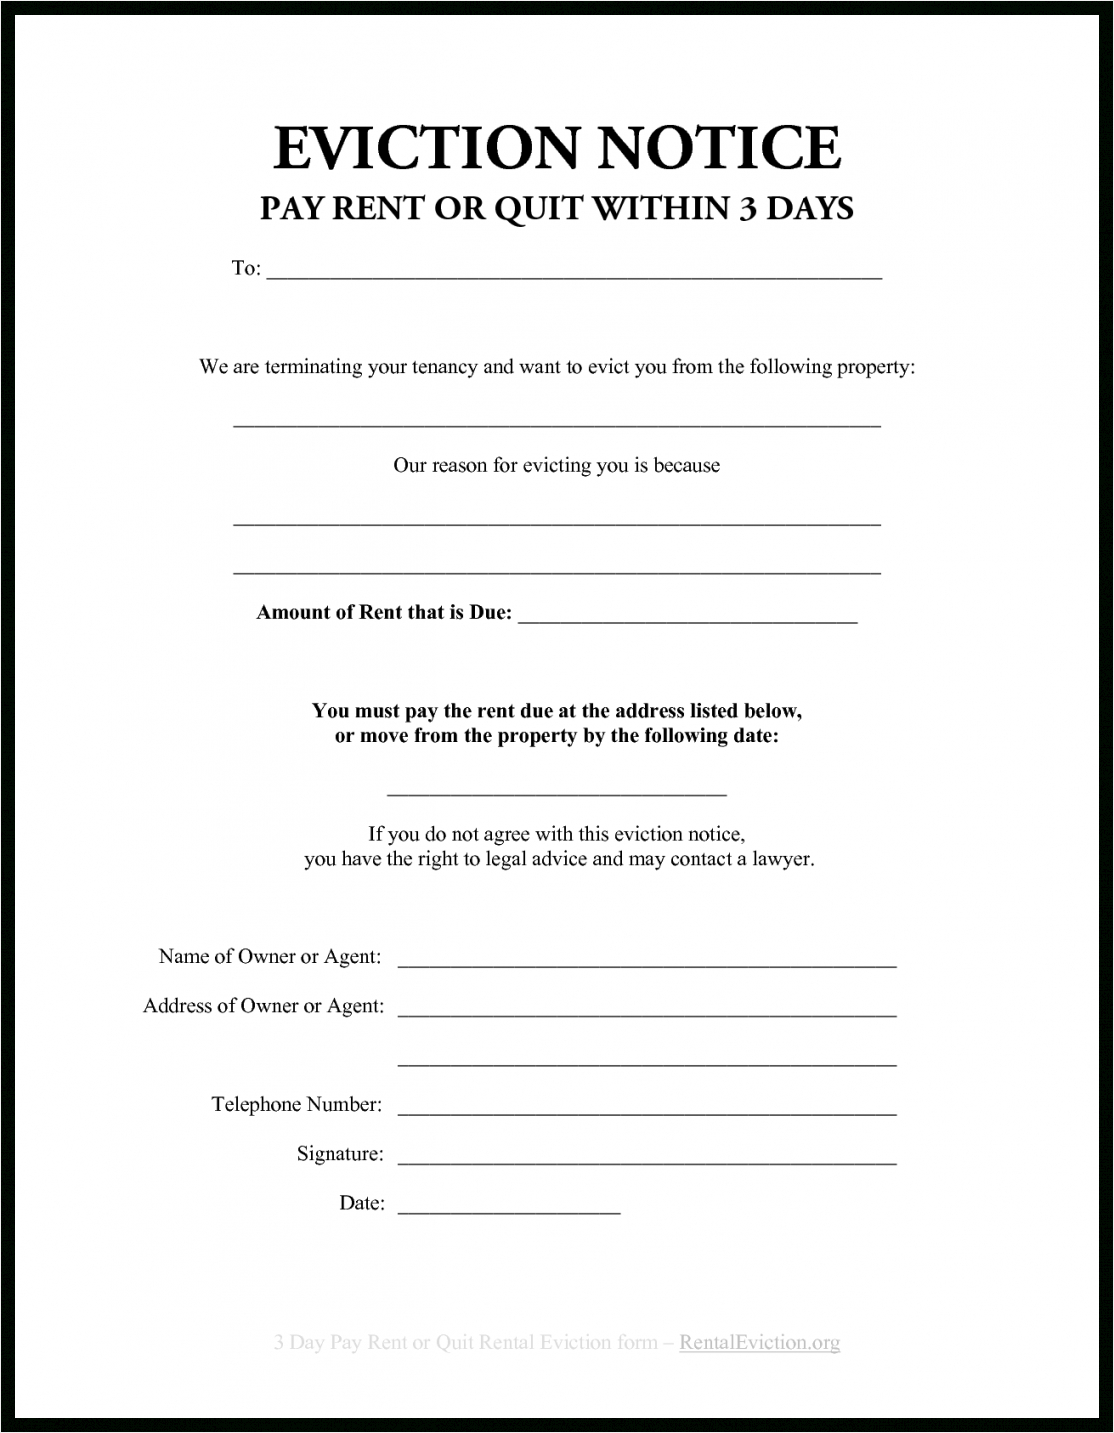 editable 30 day eviction notice template  btsmmo 30 day eviction letter template pdf